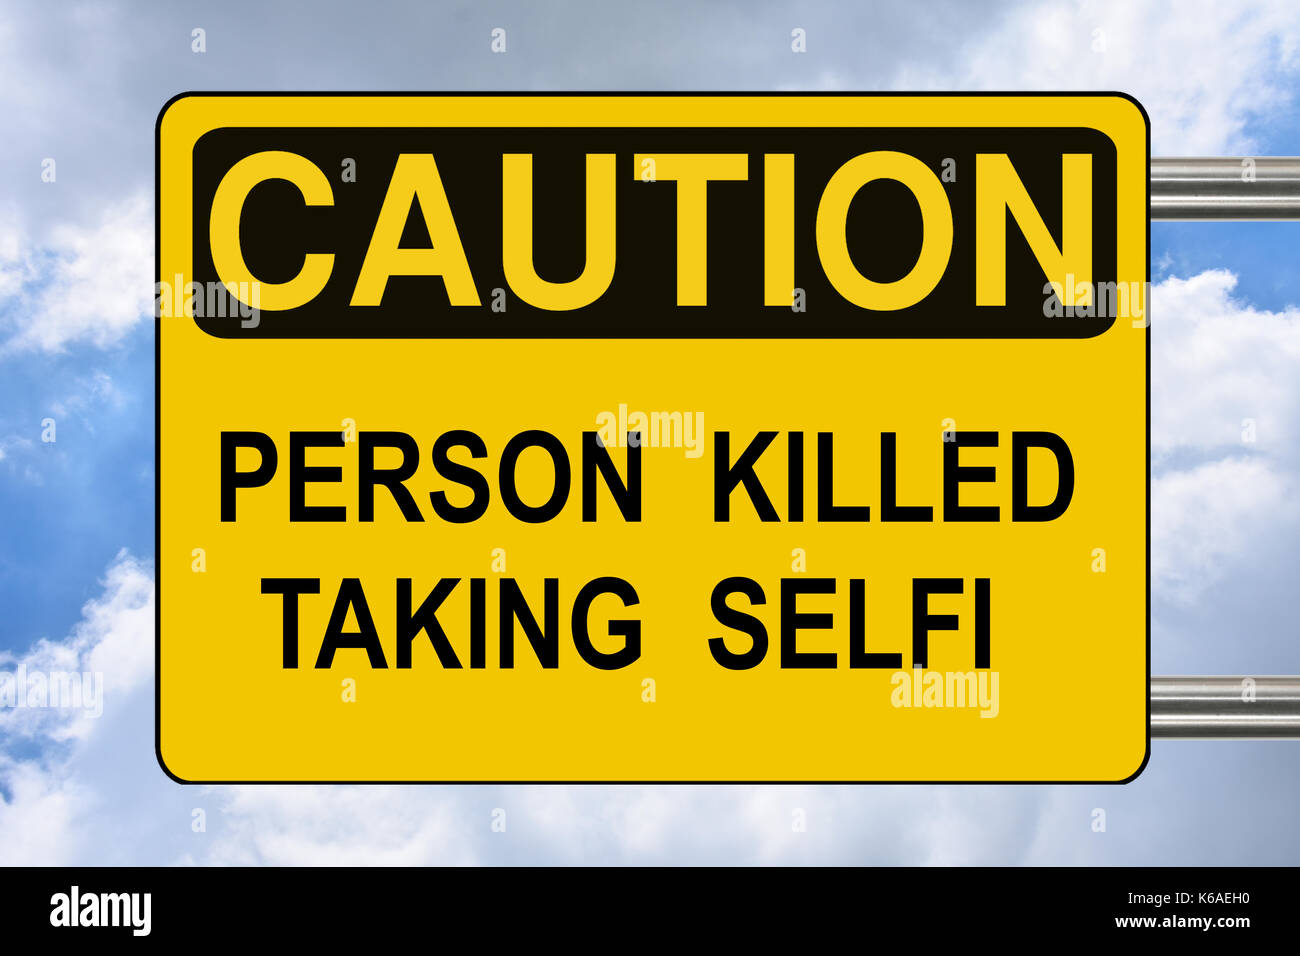 Person killed taking selfi, yellow road warning sign - Stock Image